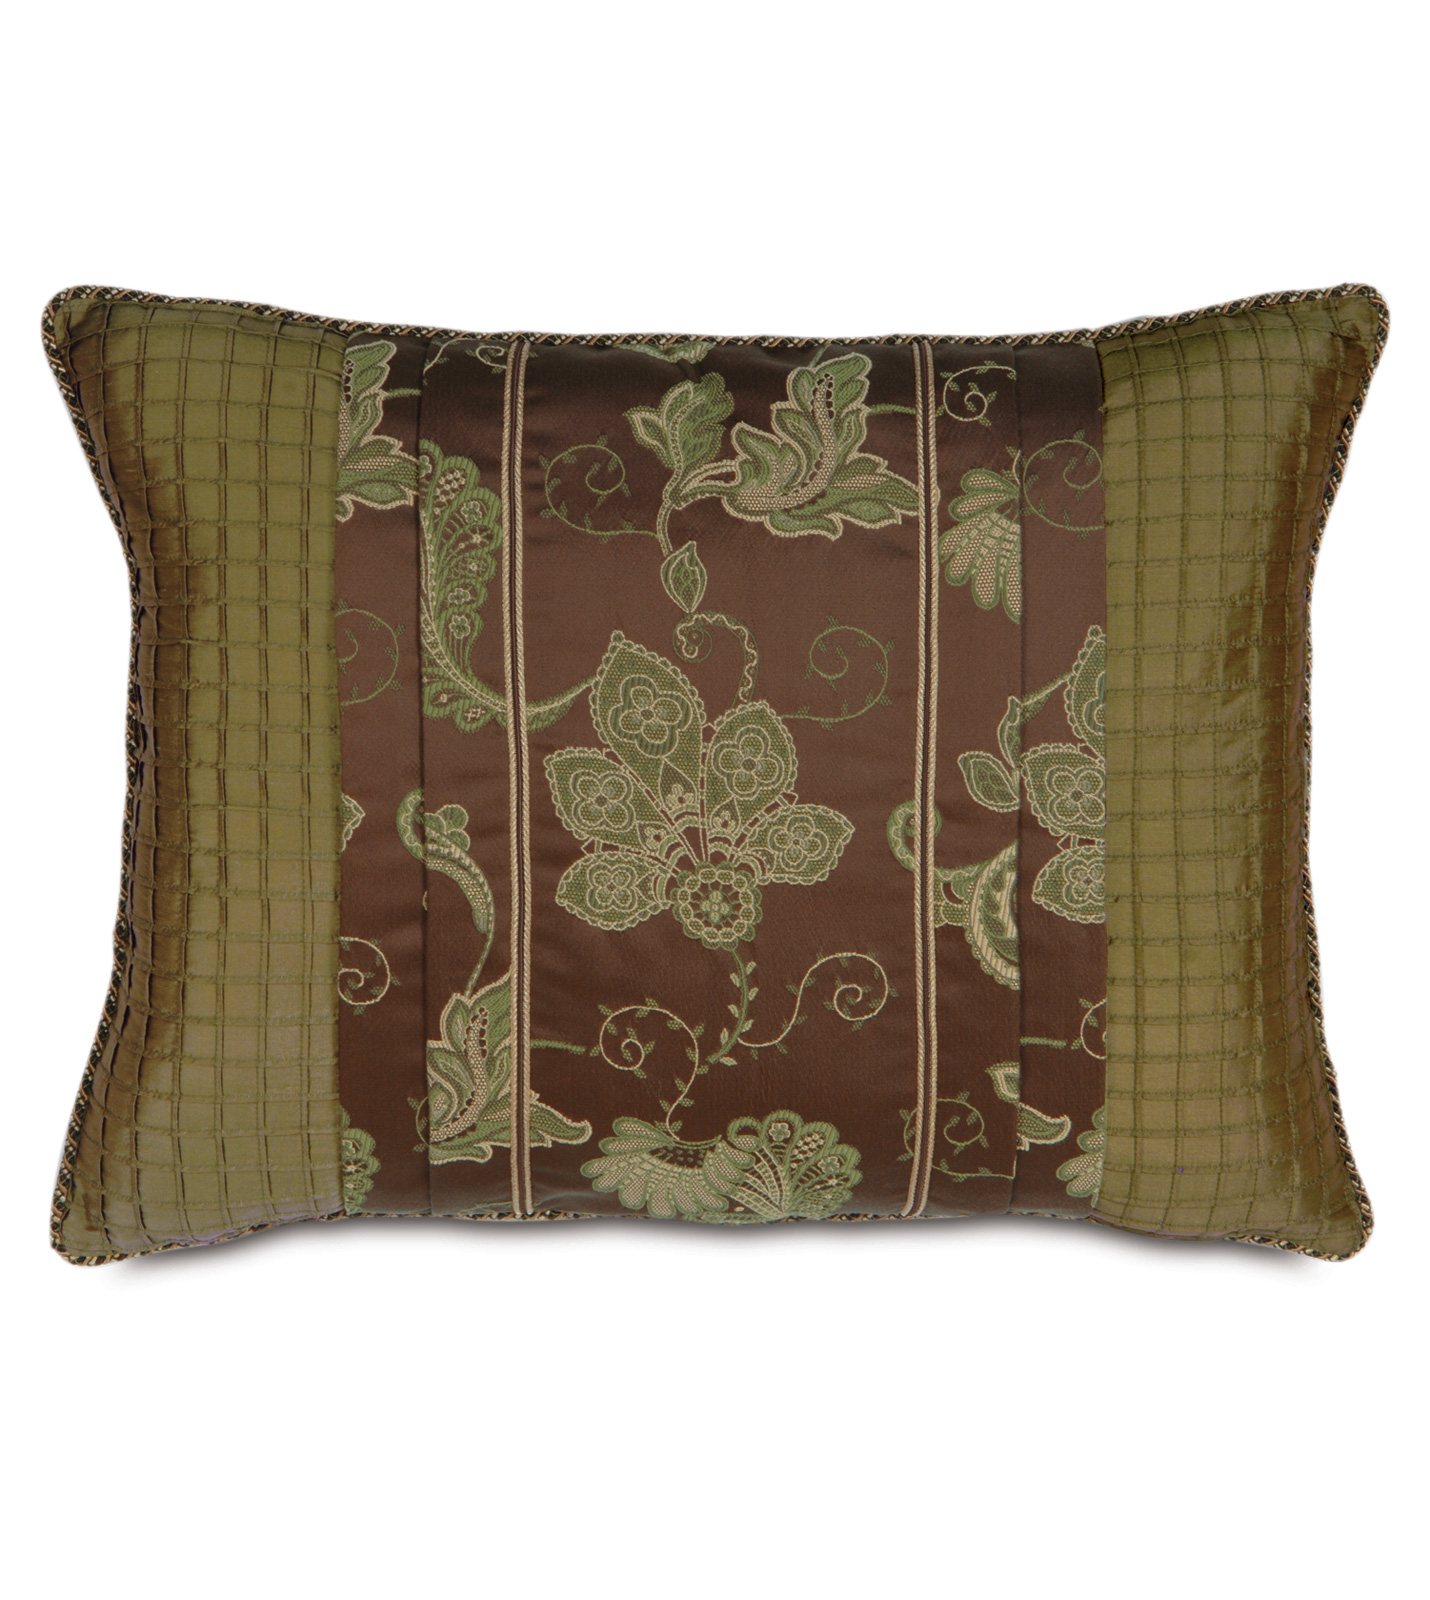 Standard Throw Pillow Inserts : Luxury Bedding by Eastern Accents - DELPHINE INSERT STANDARD SHAM